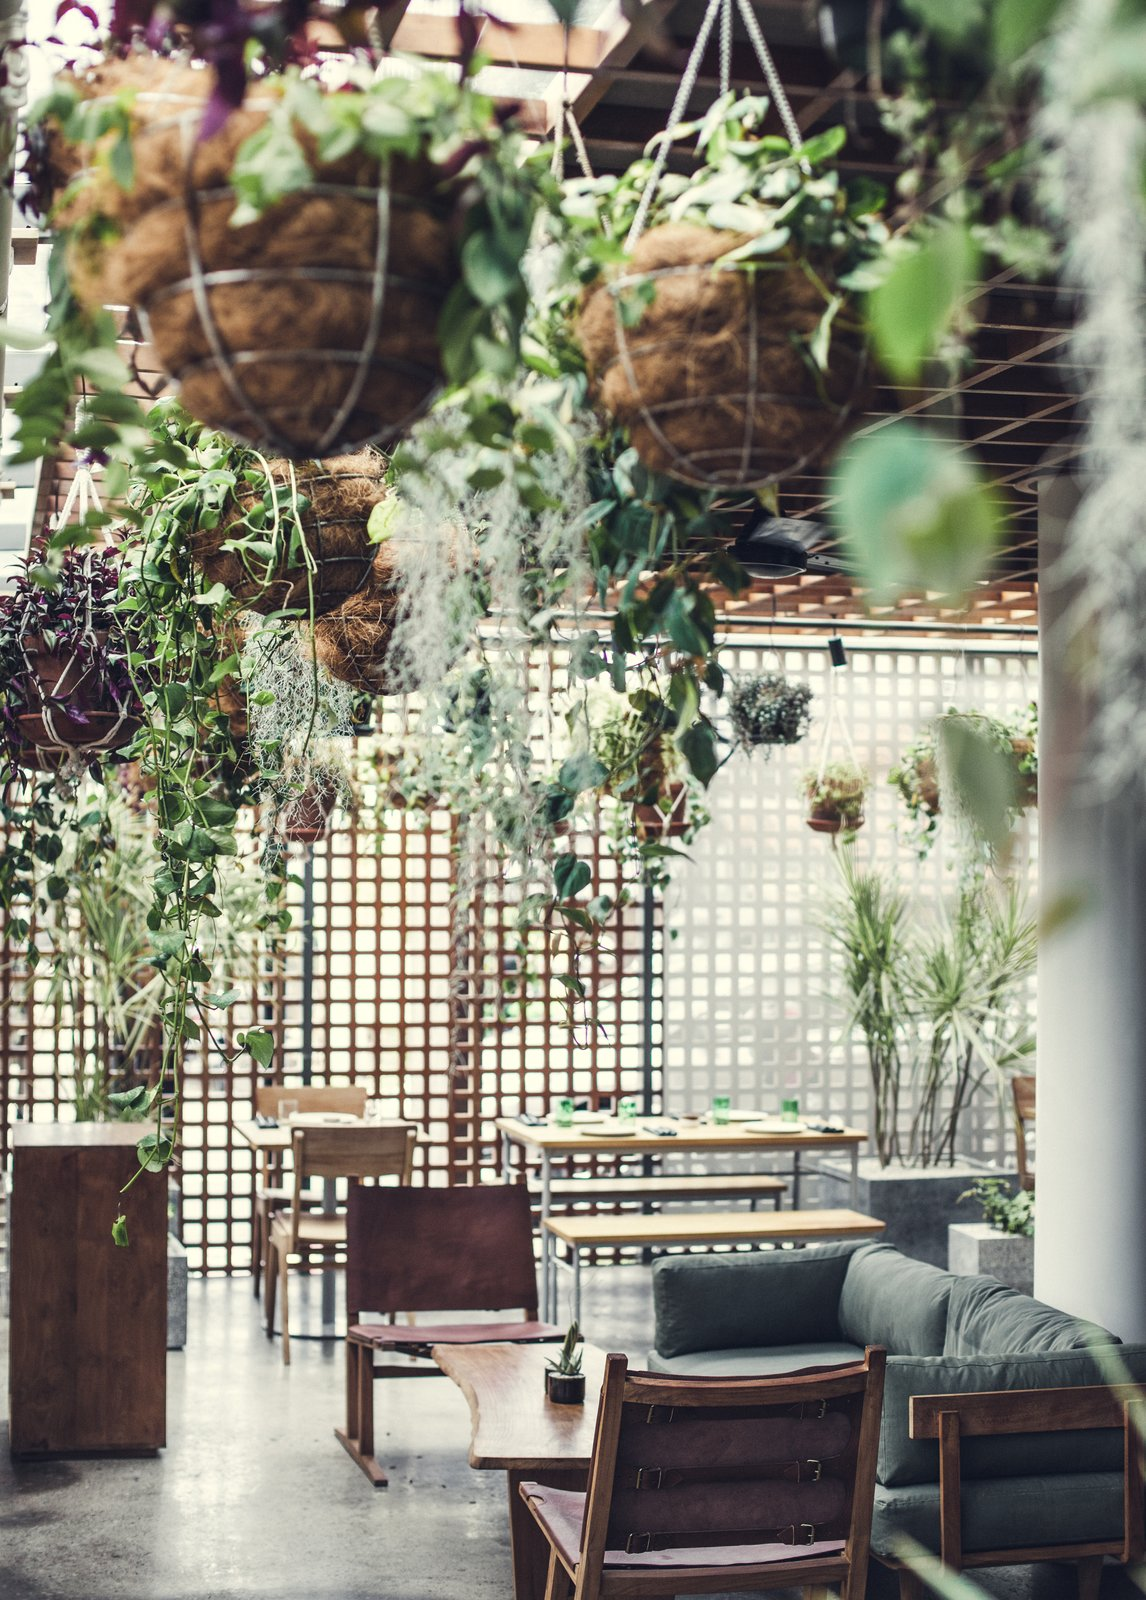 Hanging plants create an atrium atmosphere in Eat & Drink, which is open for service all day.  Head chef Shannon Moran is at the helm of Eat & Drink, whose seasonal menu draws from his travels through Europe, South America, and Asia. All throughout the venue, curated tunes from Reverberation Radio, a weekly podcast by Los Angeles-based band Allah-Las, adds to the alt-island vibe.